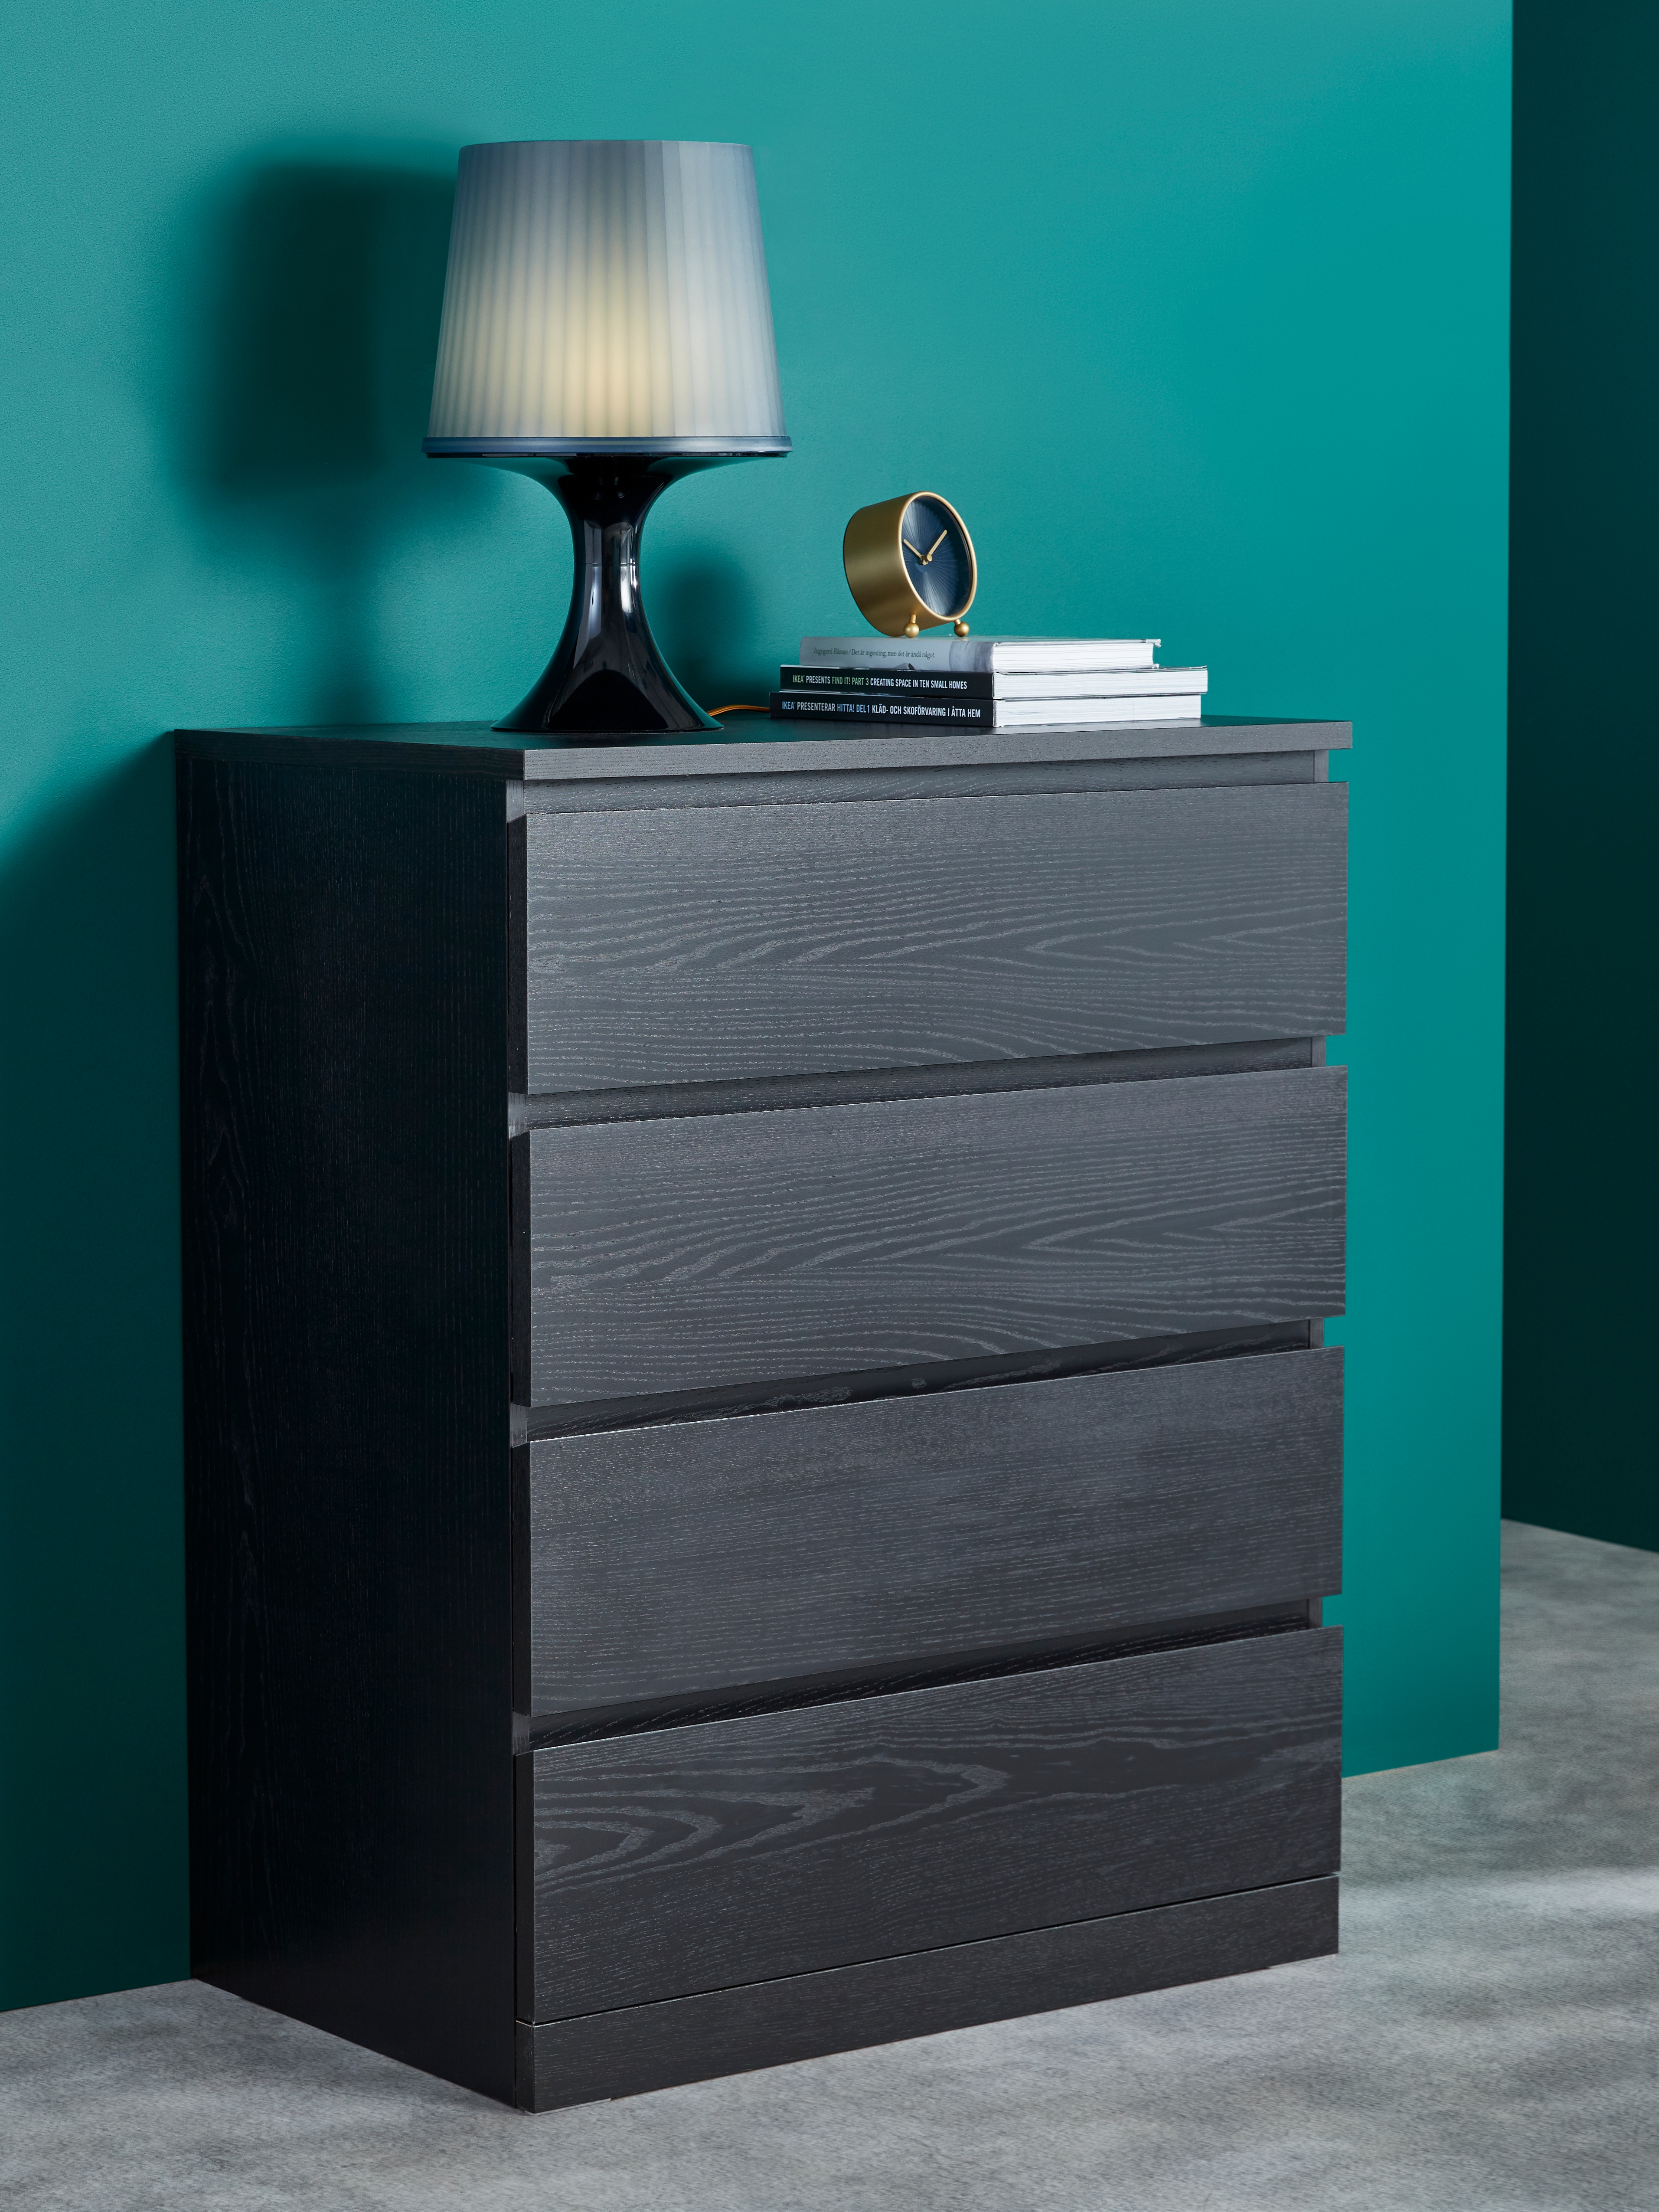 Room with green wall, black-brown chest of four drawers, dark blue table lamp, brass-coloured table clock.